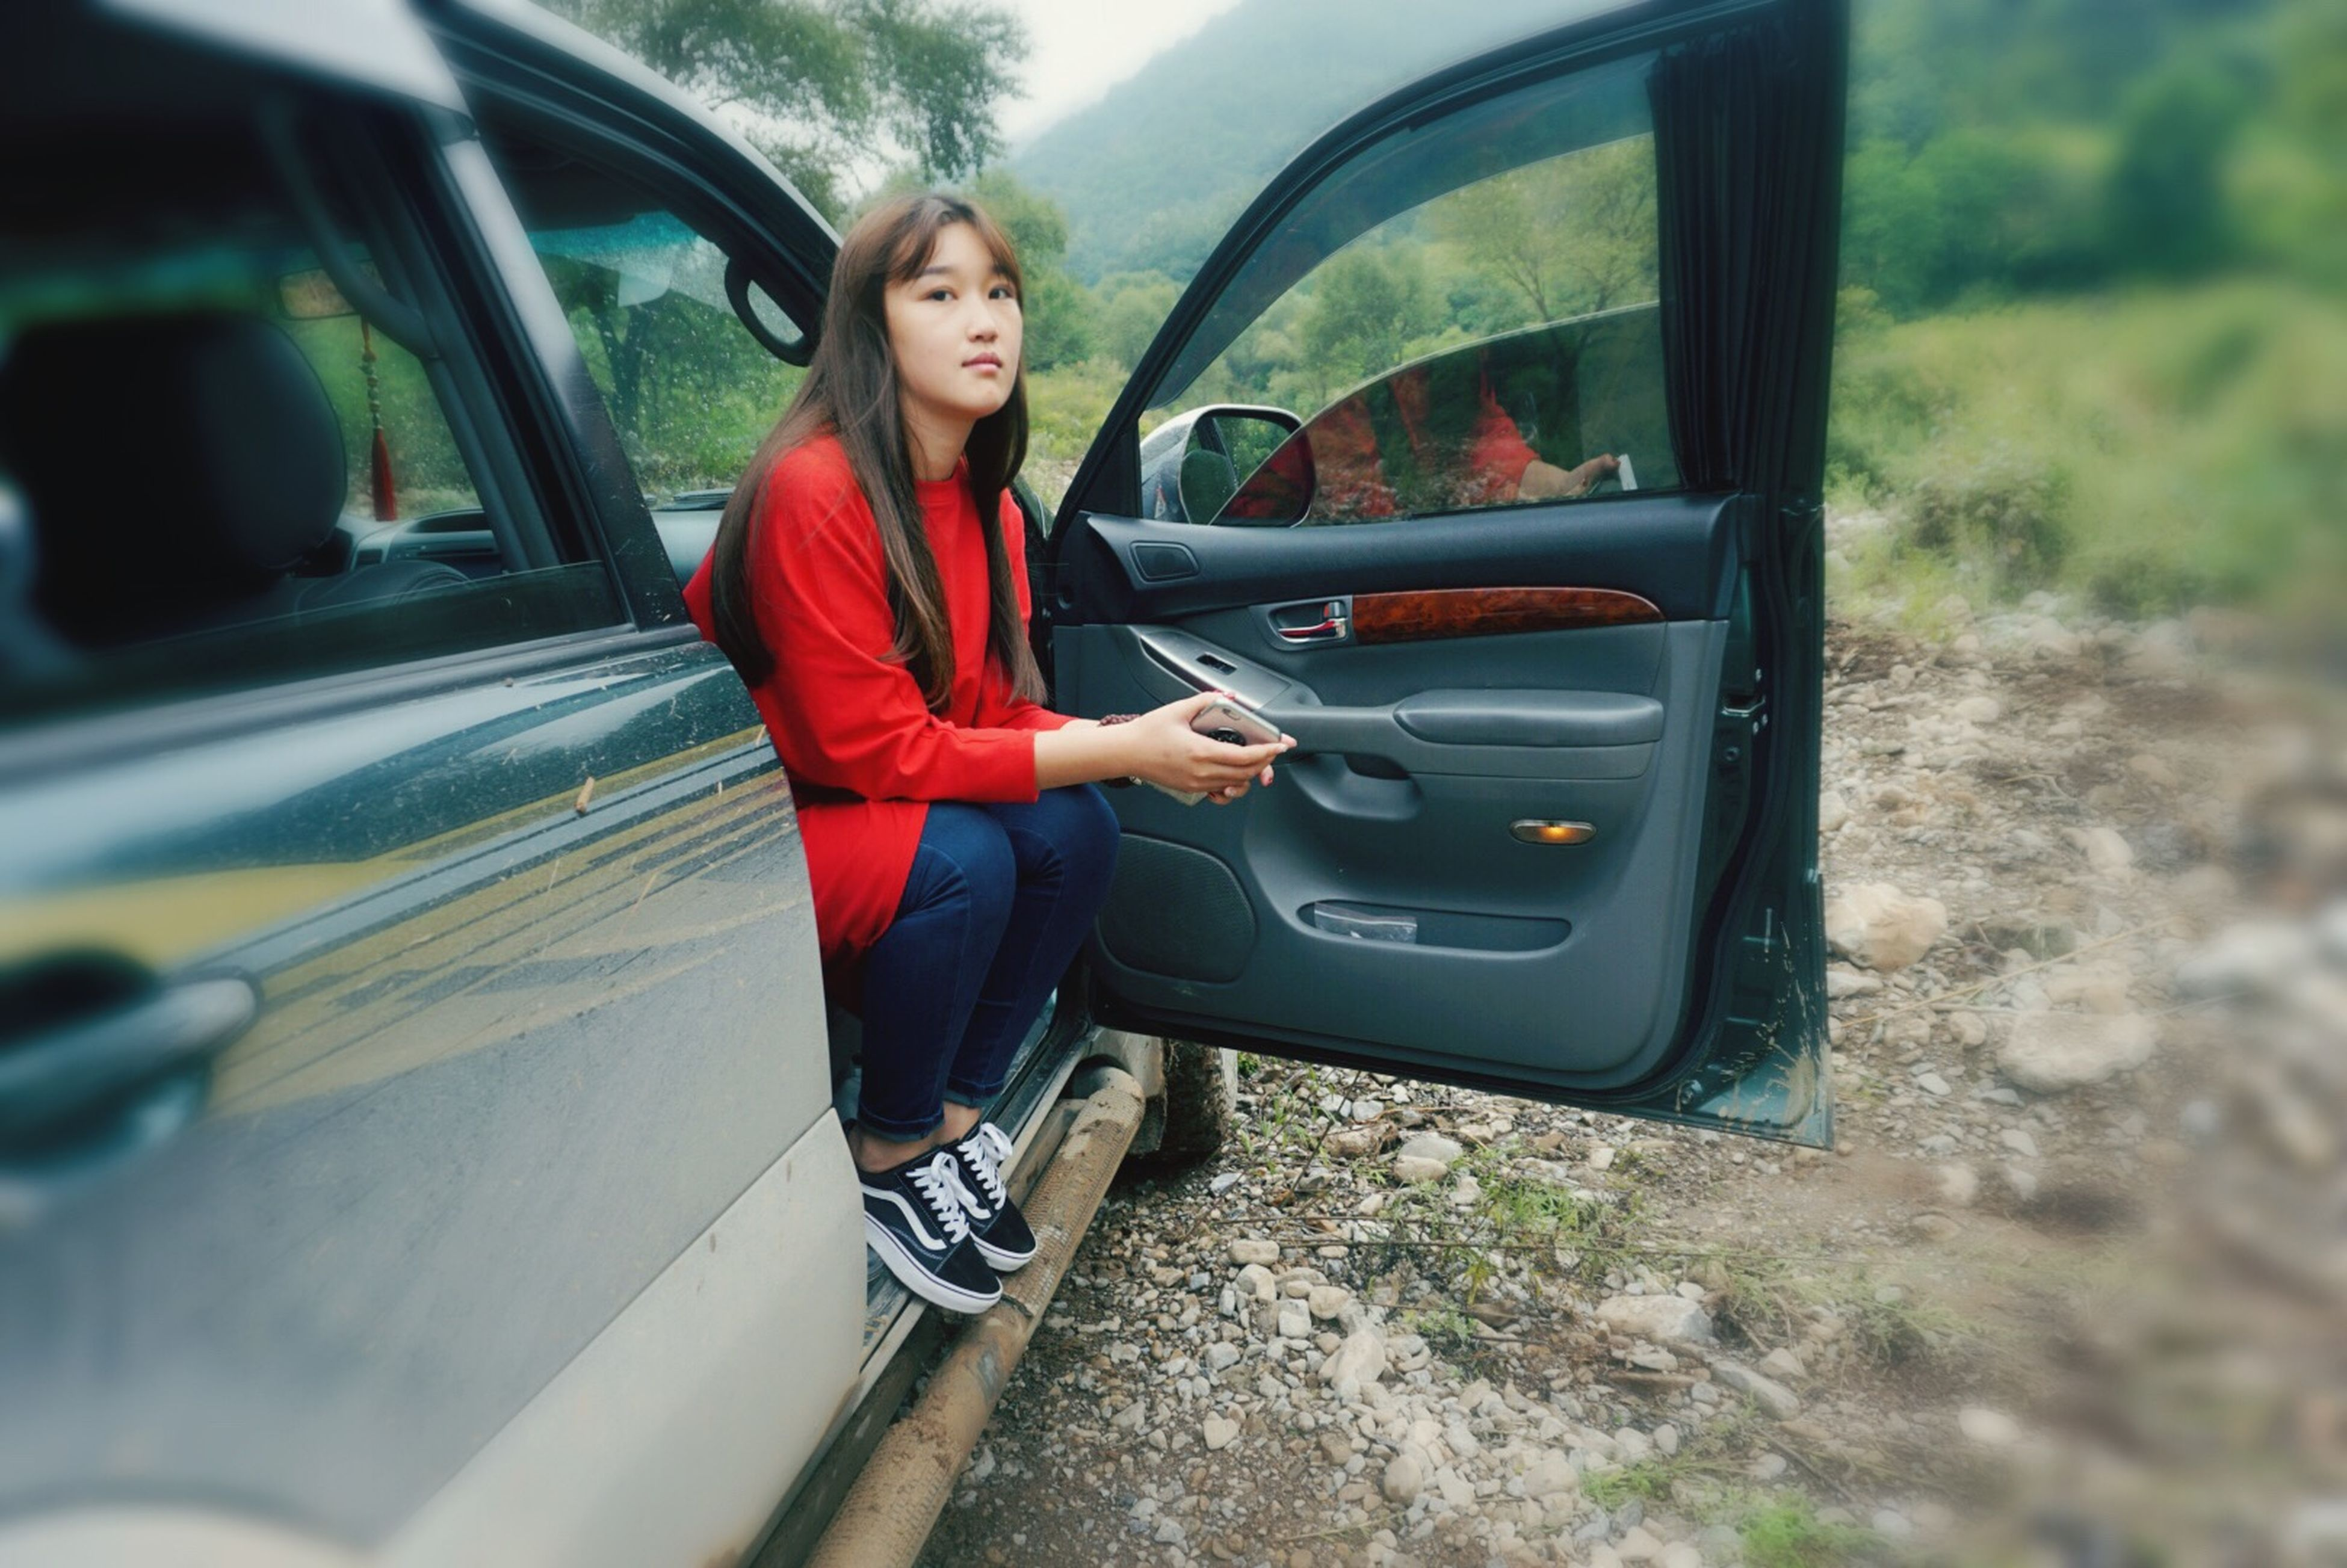 transportation, mode of transport, land vehicle, person, lifestyles, young adult, leisure activity, casual clothing, car, portrait, looking at camera, travel, sitting, front view, young women, smiling, full length, sunglasses